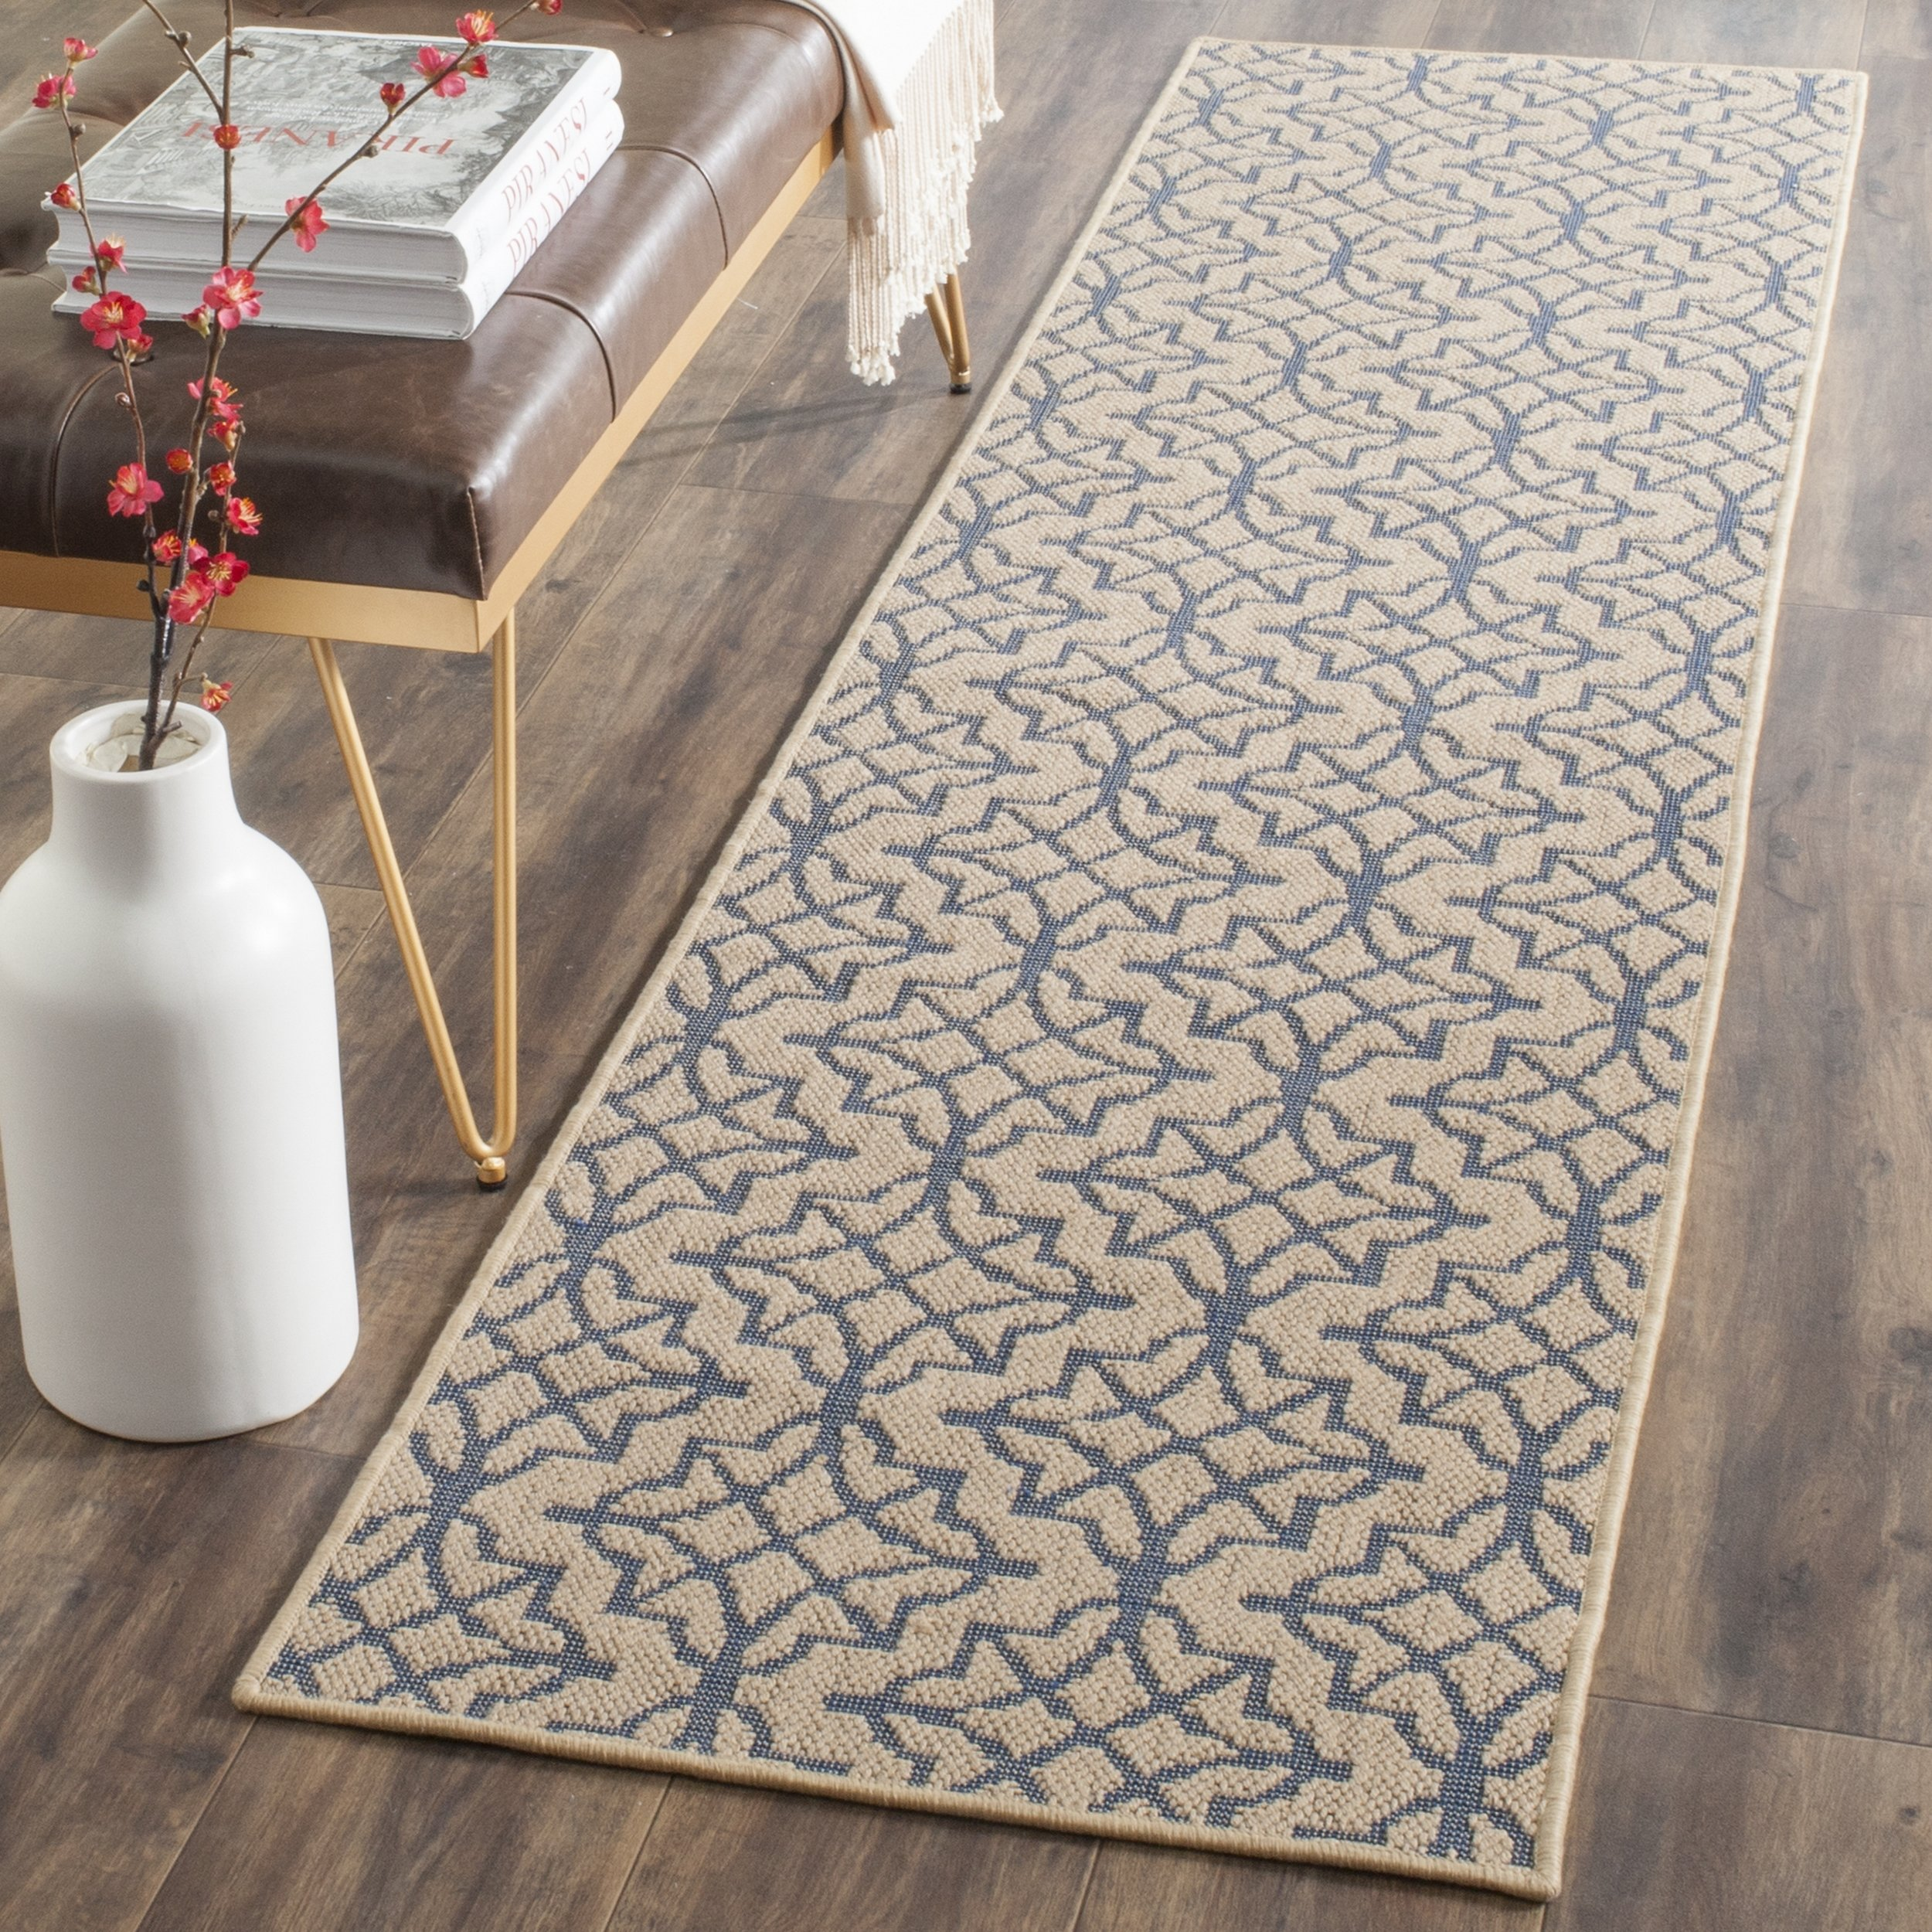 Safavieh Palm Beach Collection PAB513A Hand Woven Natural and Black Jute Runner (2' x 8')